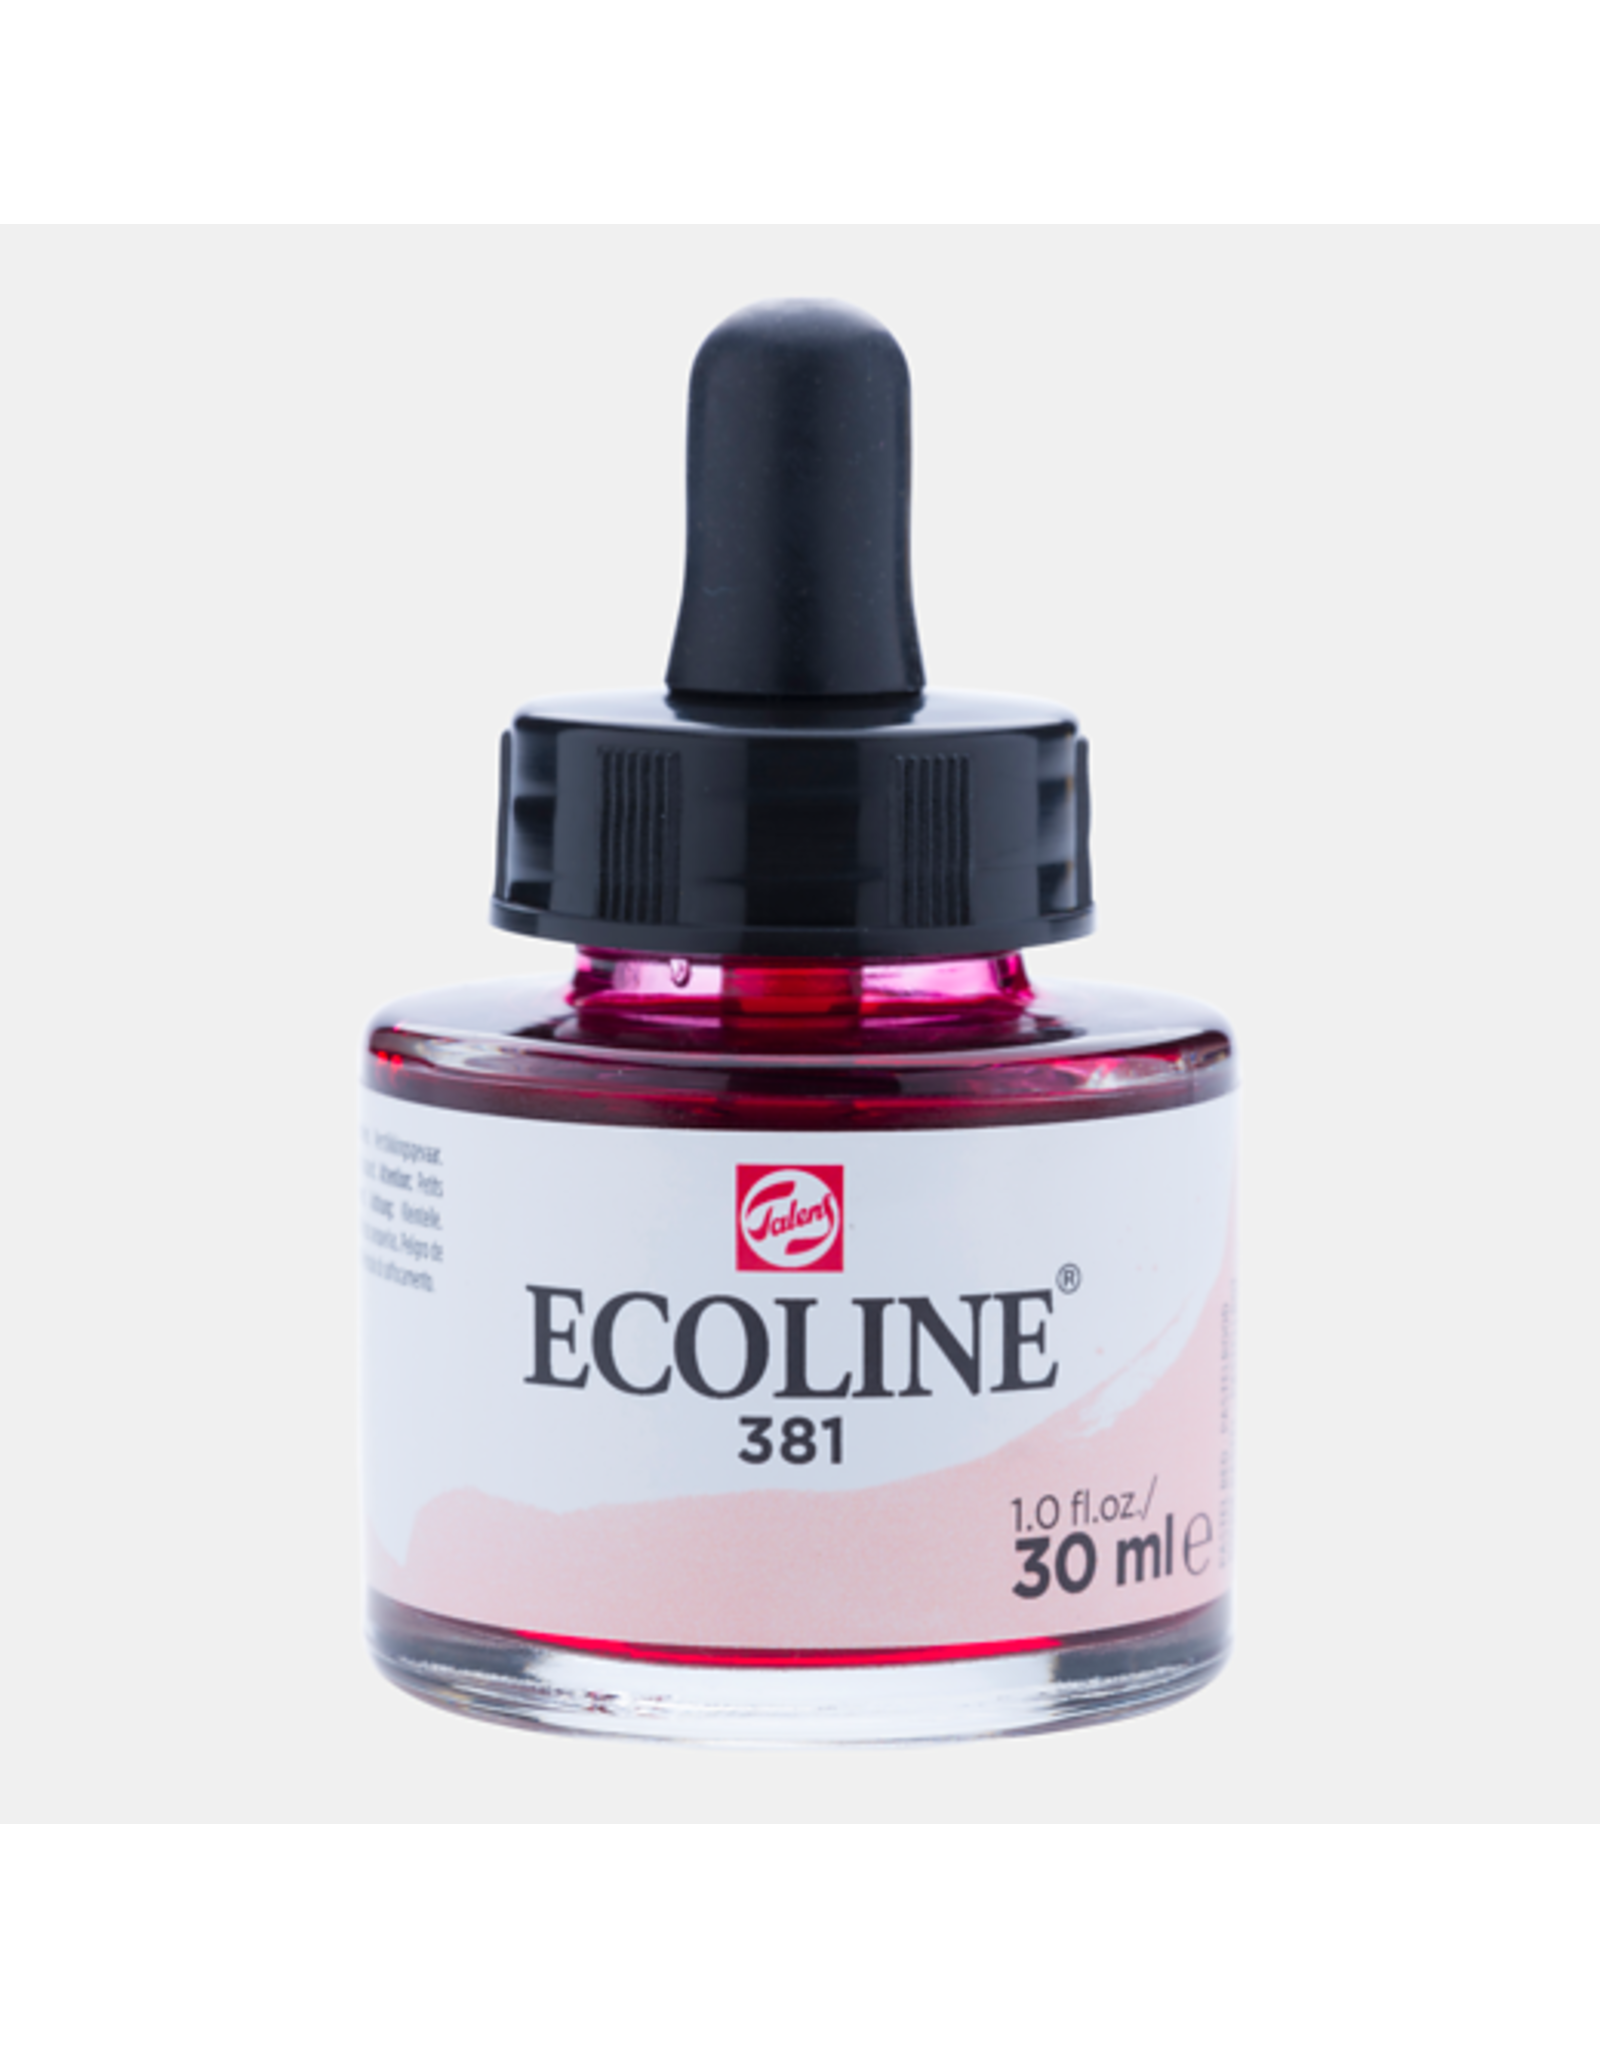 Talens Ecoline 30 ML. Pastel red